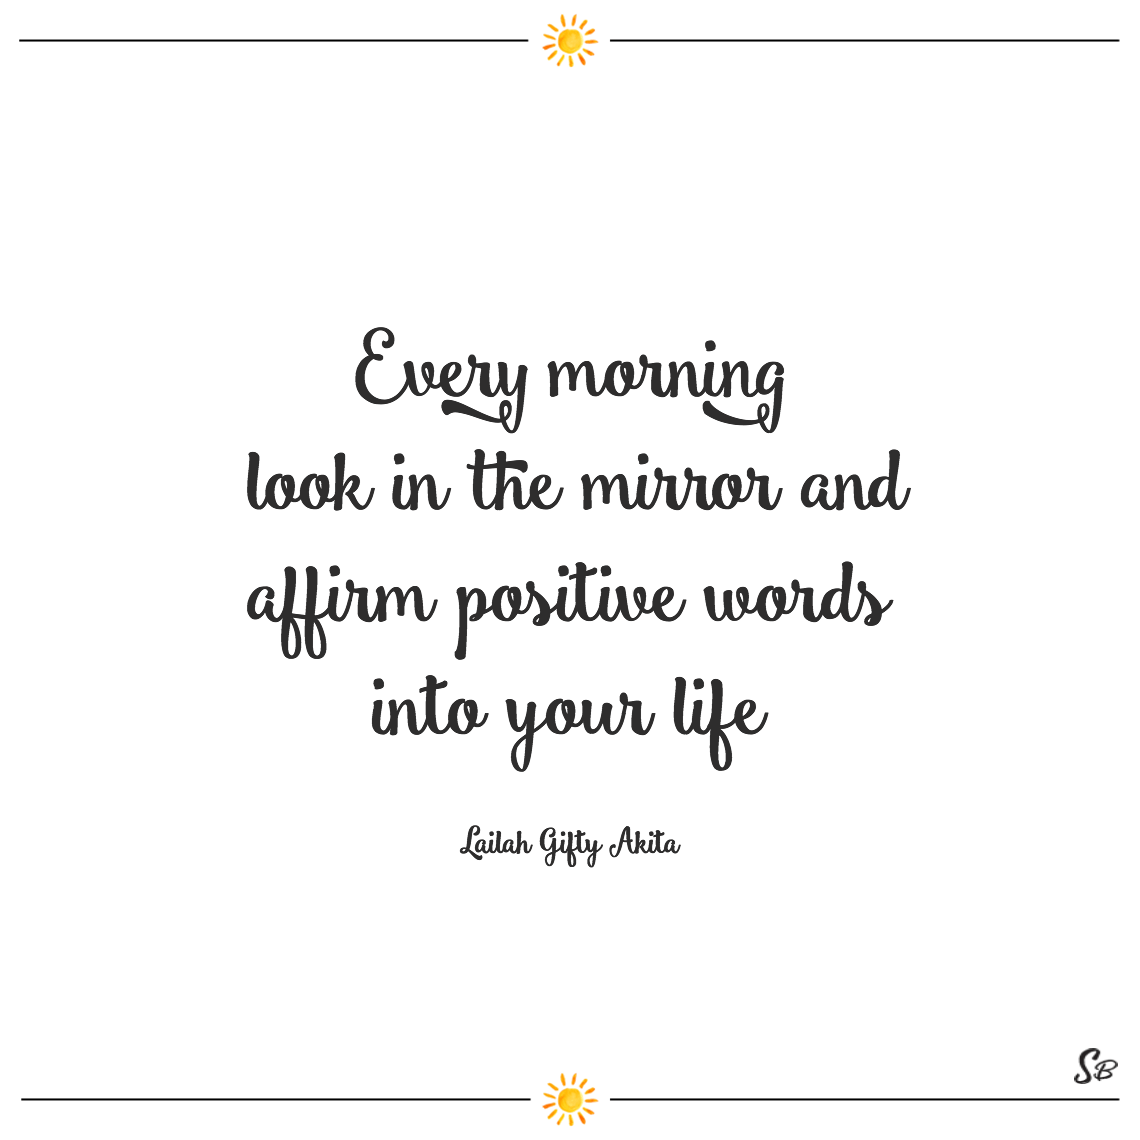 Quotes About Your Life Entrancing 40 Awesome Good Morning Quotes To Jump Start Your Day  Spirit Button